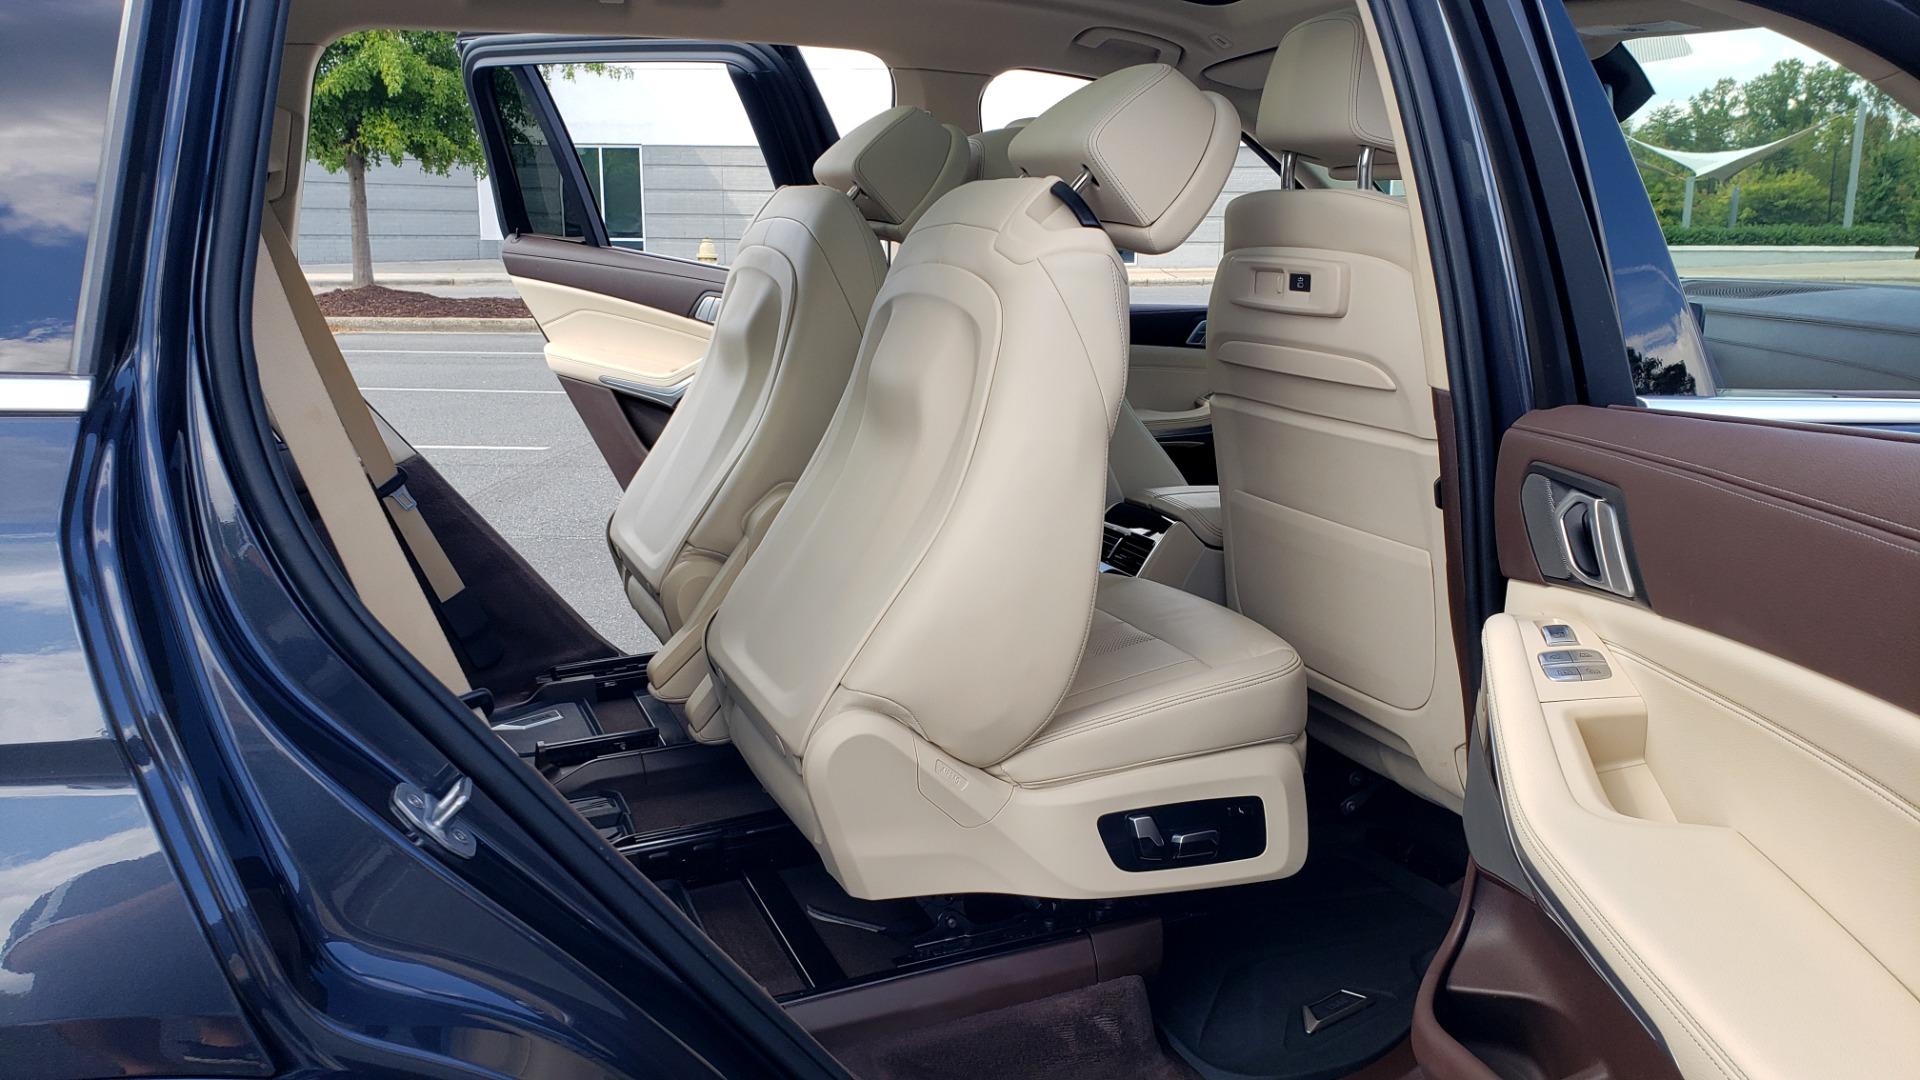 Used 2019 BMW X7 XDRIVE40I PREMIUM / LUXURY / COLD WEATHER / PARK ASST / PANORAMIC SKY / TOW for sale $75,999 at Formula Imports in Charlotte NC 28227 75